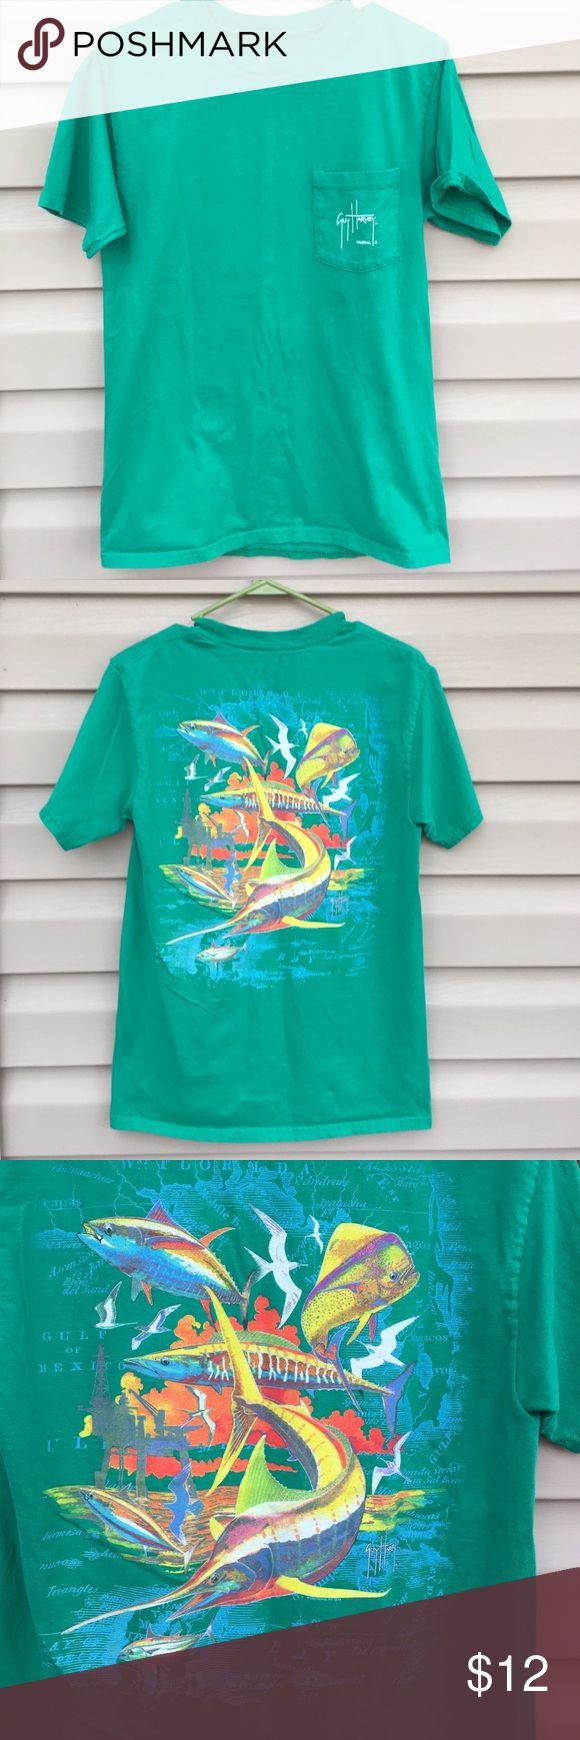 Guy Harvey men's green short sleeve shirt Nice blue water green shirt with front pocket with logo, fish scene on back. 100% cotton, no stains or holes. EUC Guy Harvey Shirts Tees - Short Sleeve